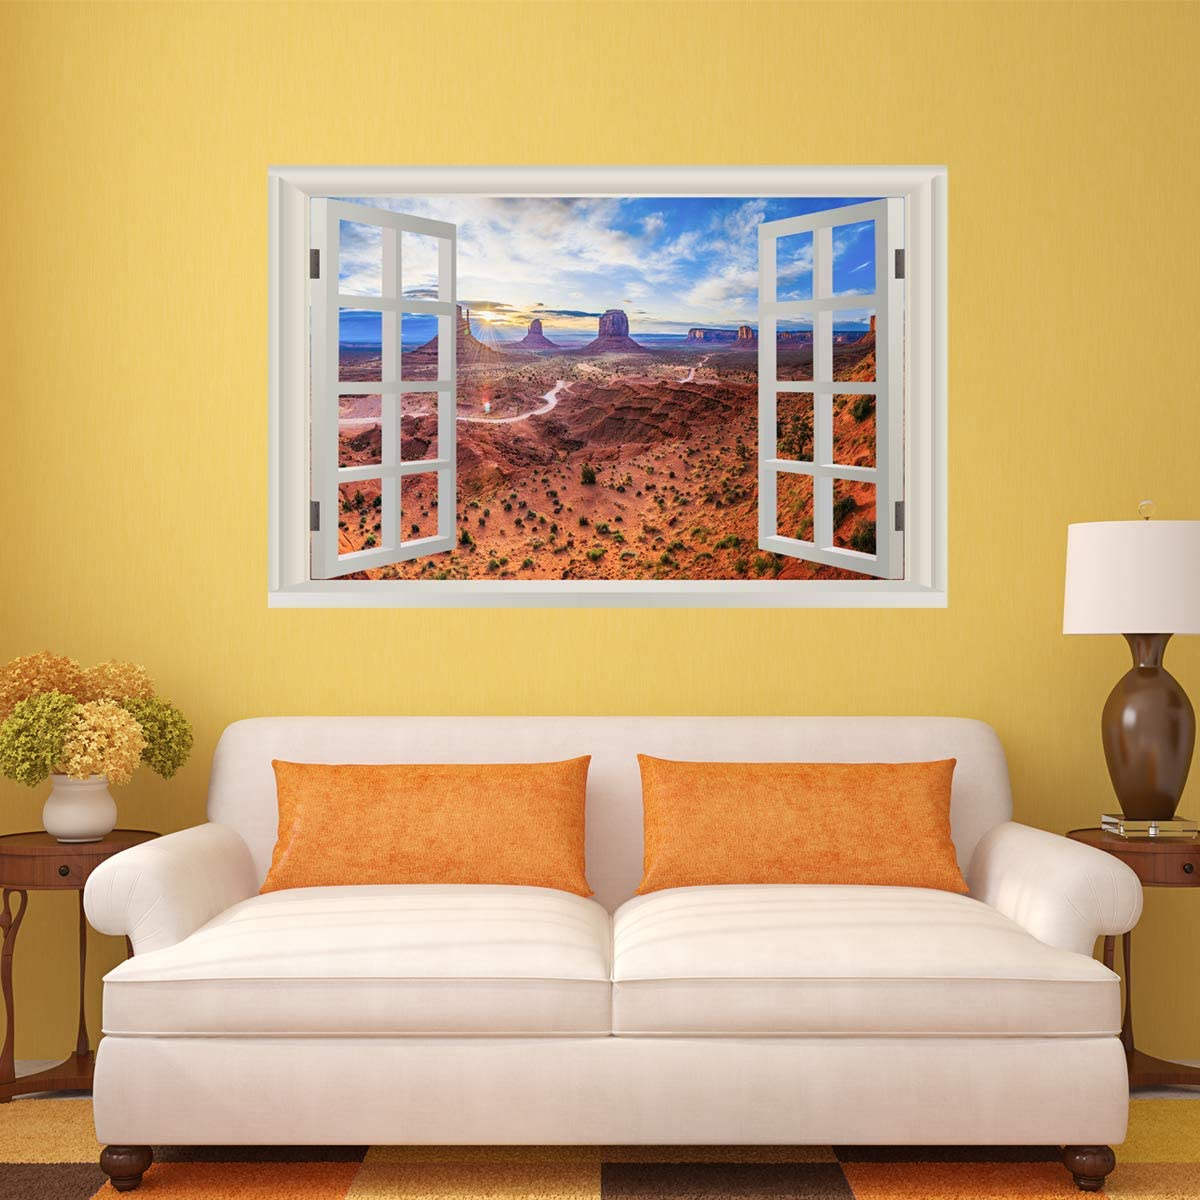 3d Window Wall Decals Monument Valley Desert Landscape Peel And Vwaq